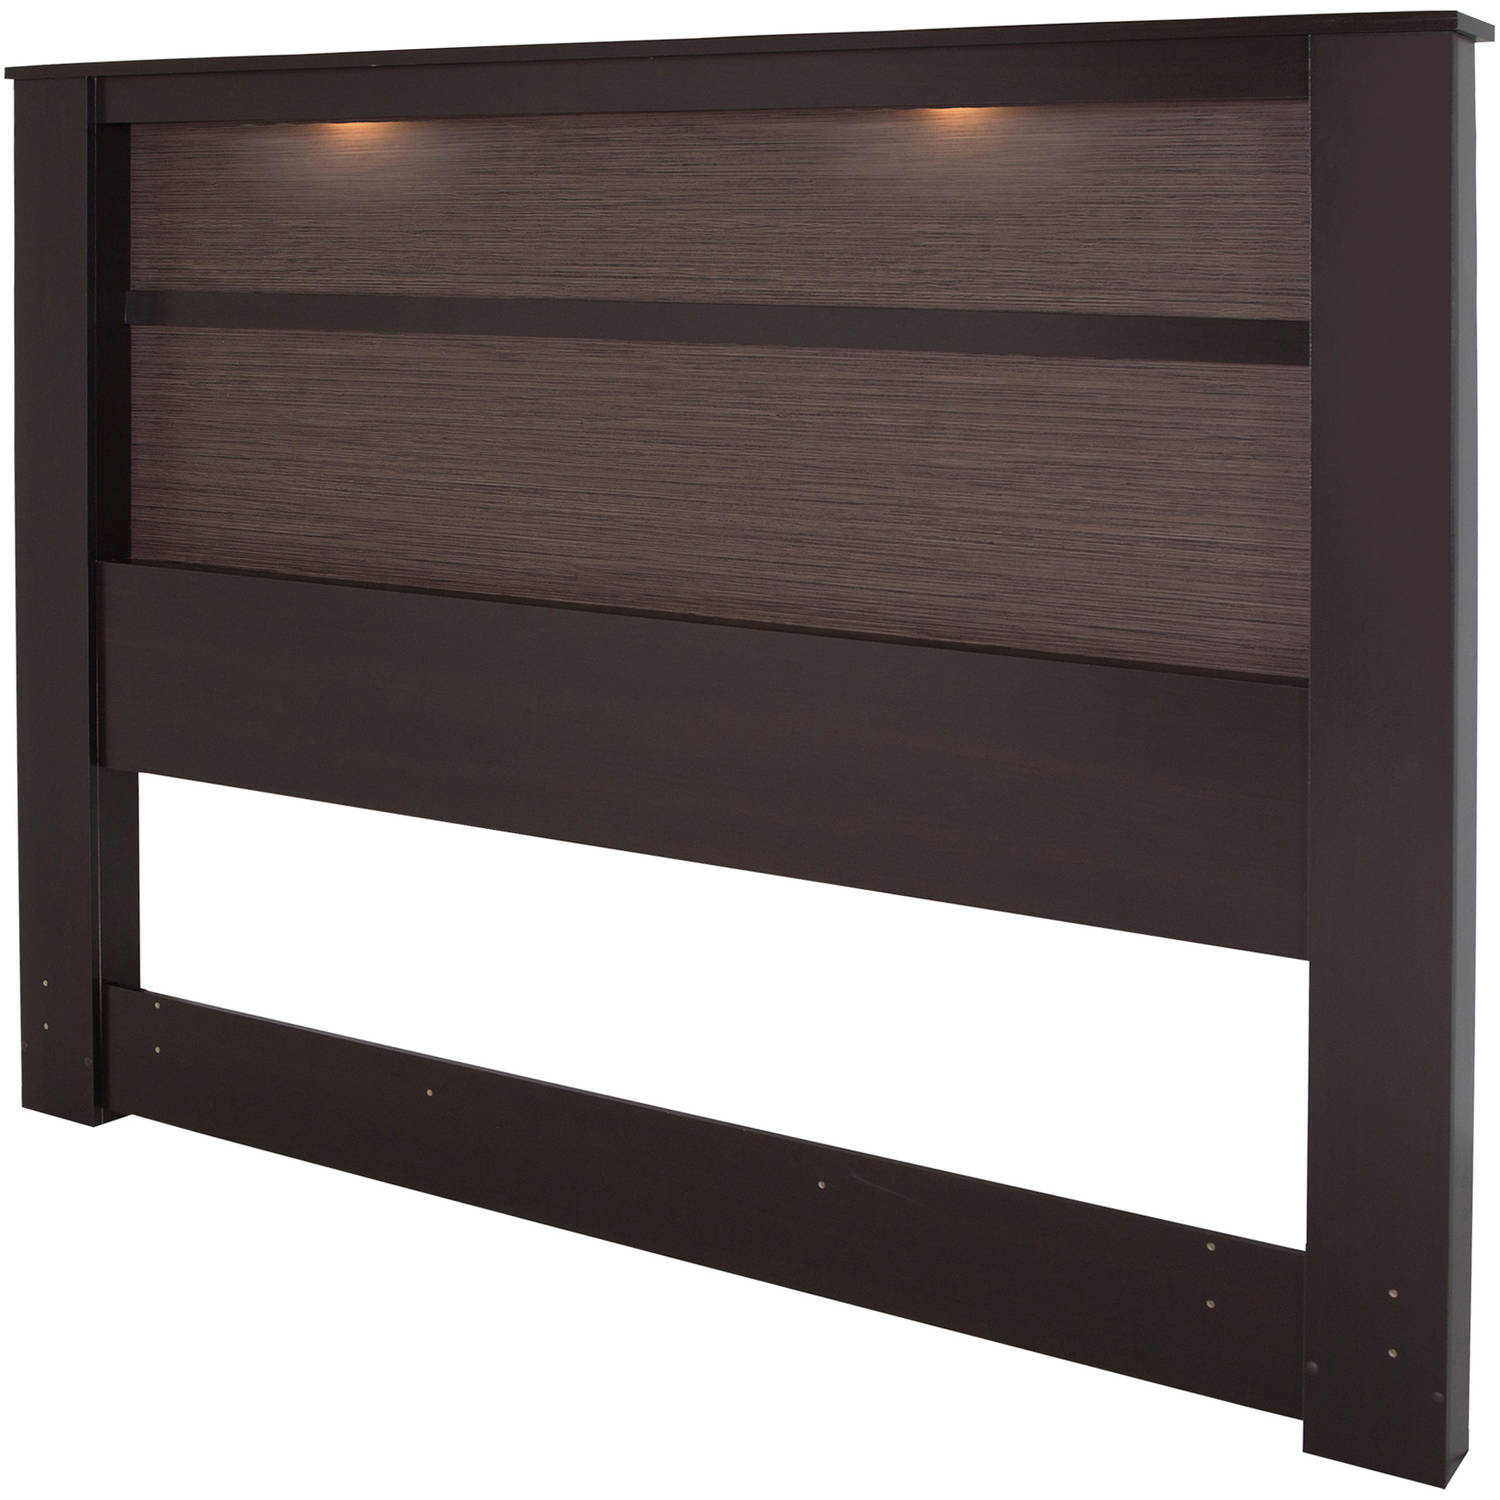 "South Shore Gloria King Headboard with Lights, 78"", Multiple Finishes"